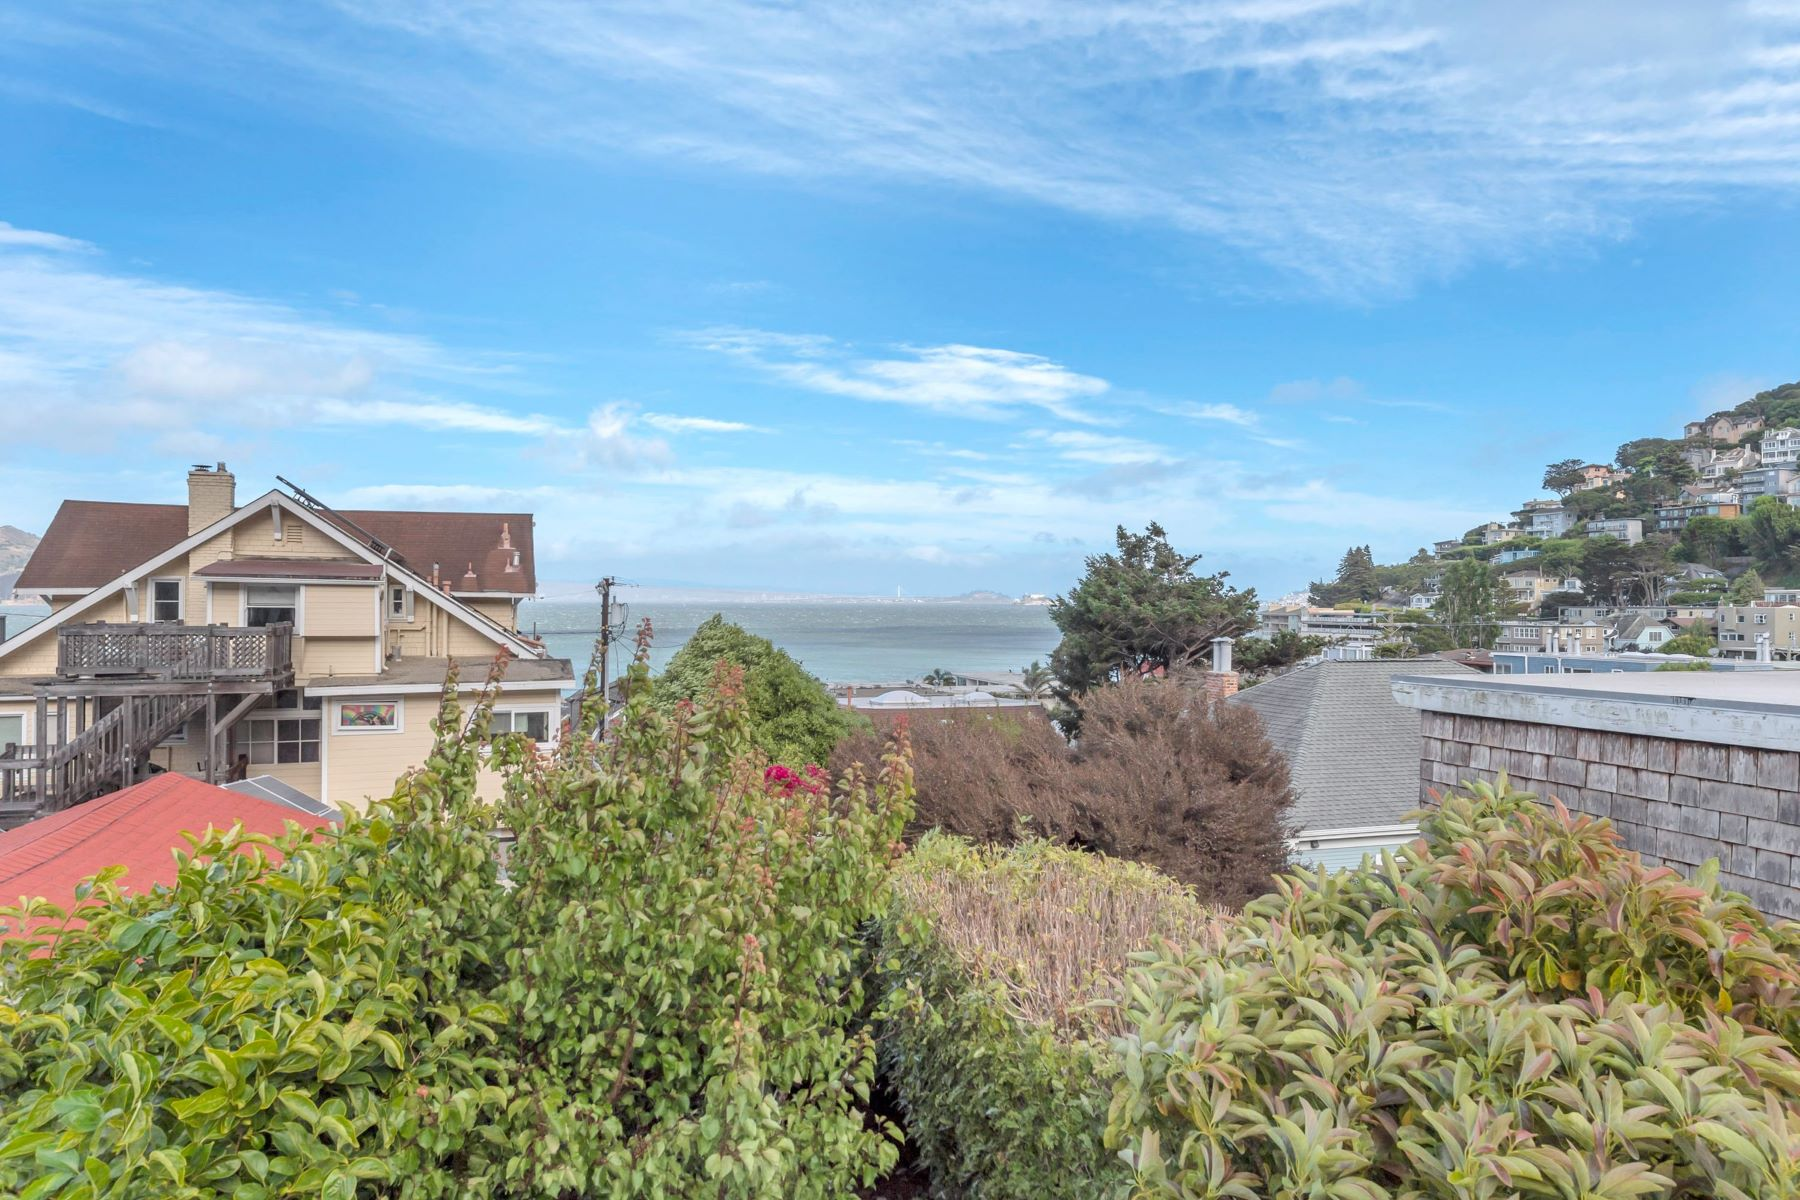 Single Family Homes for Sale at Incredible Views in the Heart of Old Town Sausalito 208 4th Street, Sausalito, California 94965 United States